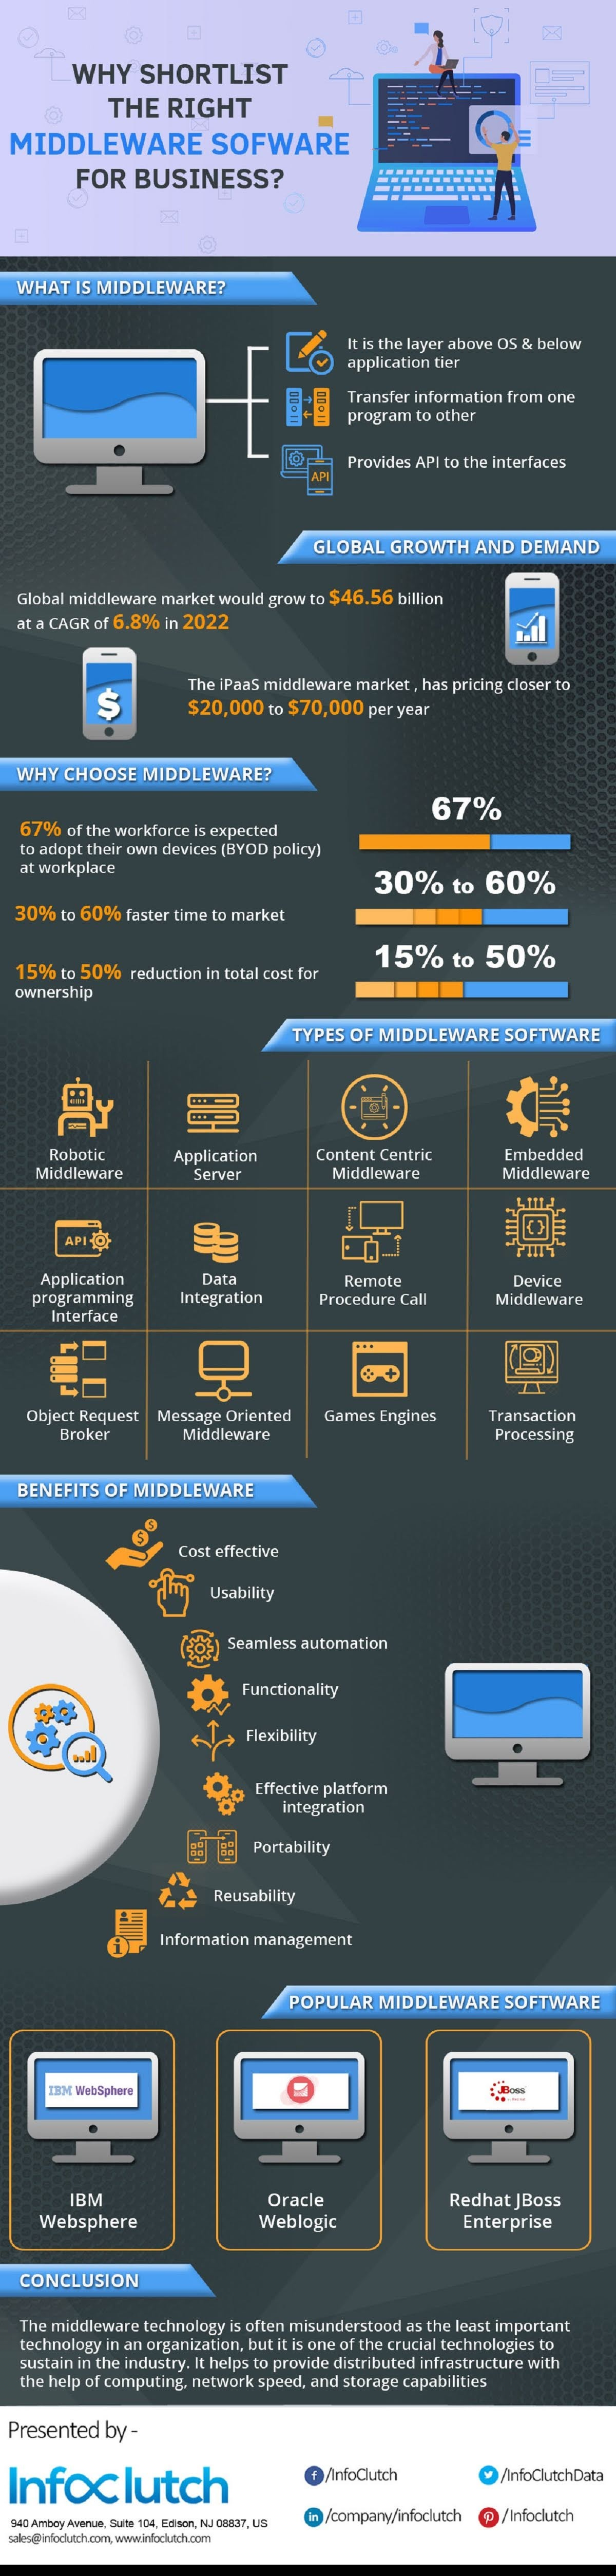 why-shortlist-the-right-middleware-software-for-business-infographic